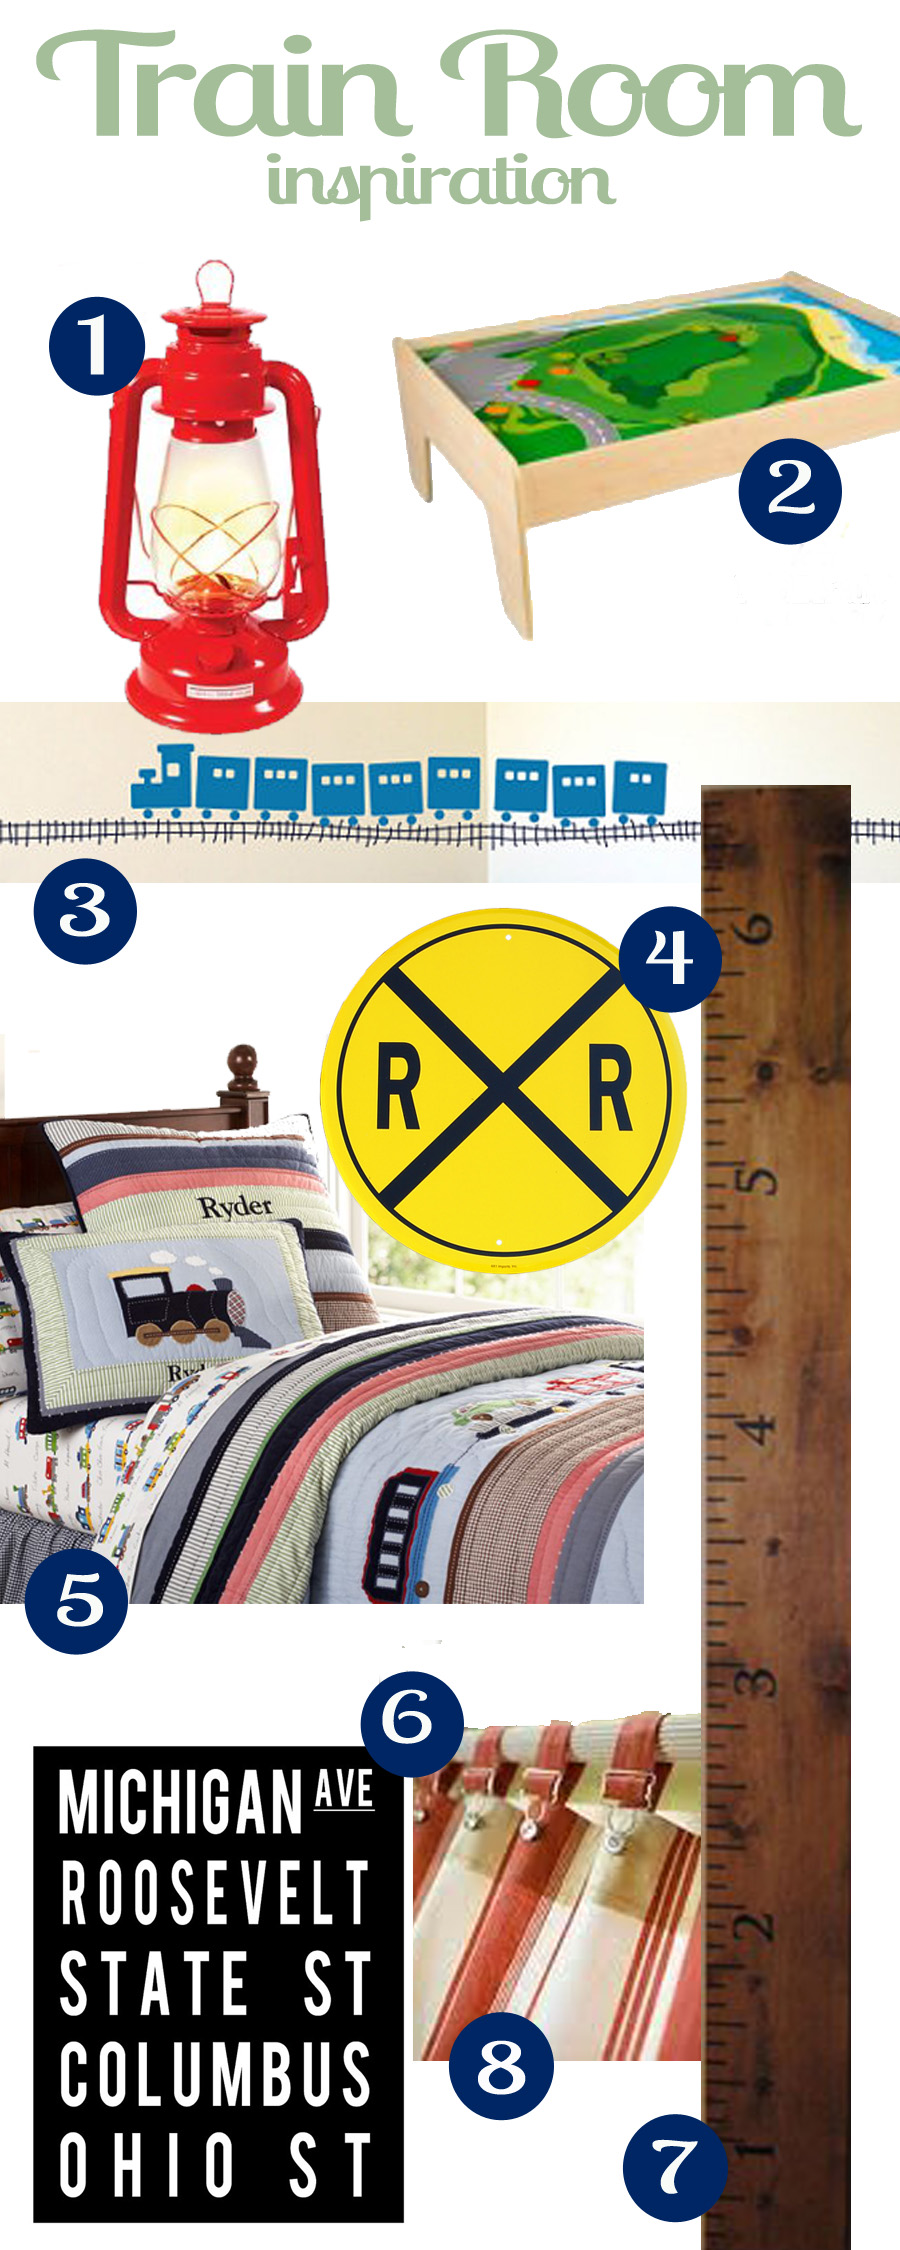 Train room inspiration thestickerhut train decal 4 aluminum railroad crossing sign 5 pottery barn ryder train bedding 6 chicago subway art 7 diy ruler growth chart 8 nvjuhfo Choice Image